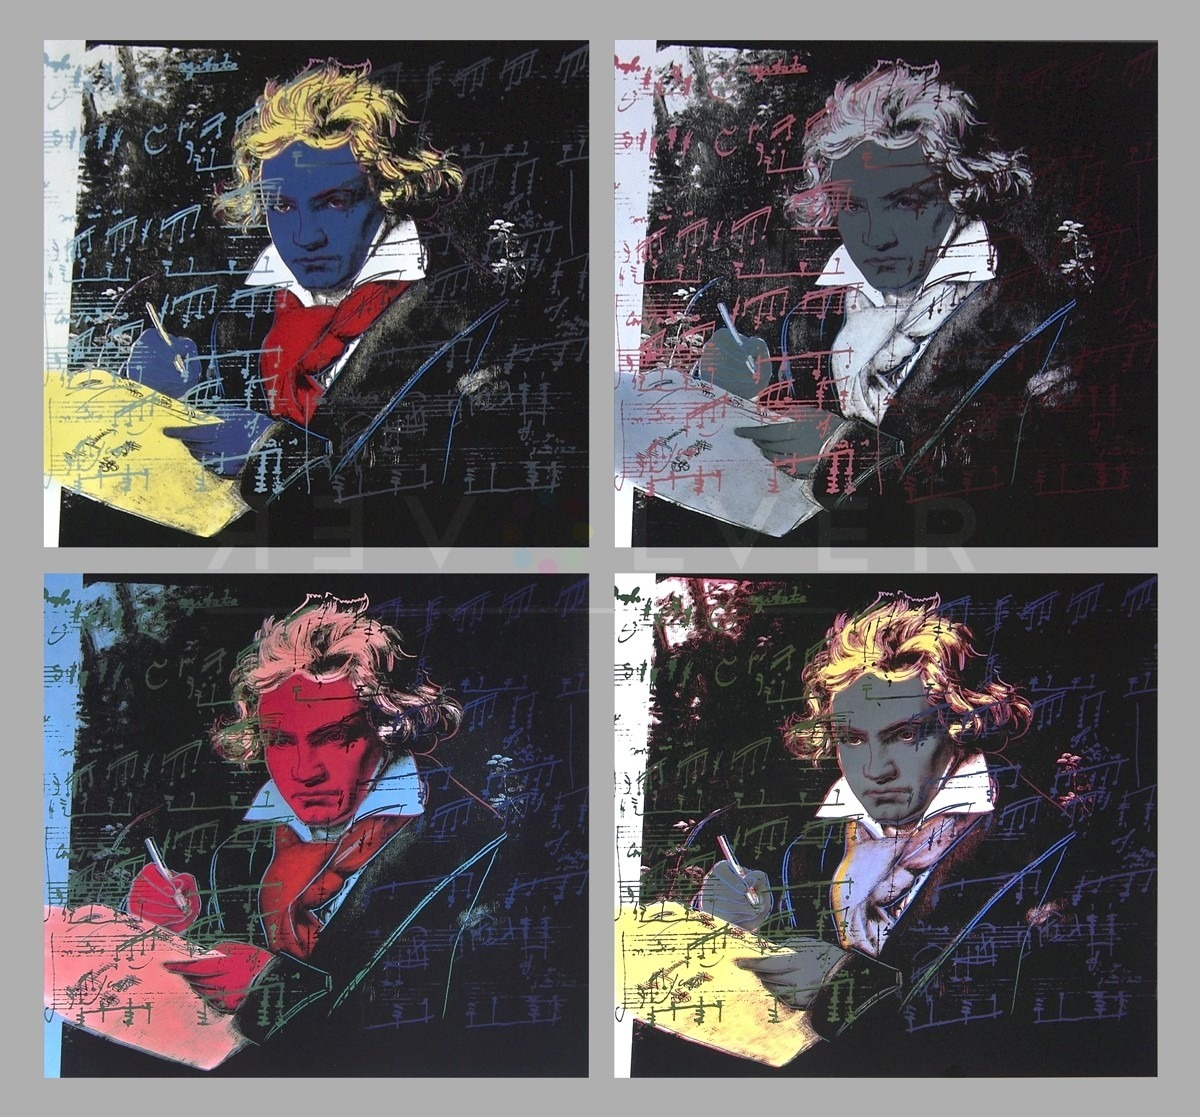 Andy Warhol Beethoven portfolio. 4 prints in a grid structure.